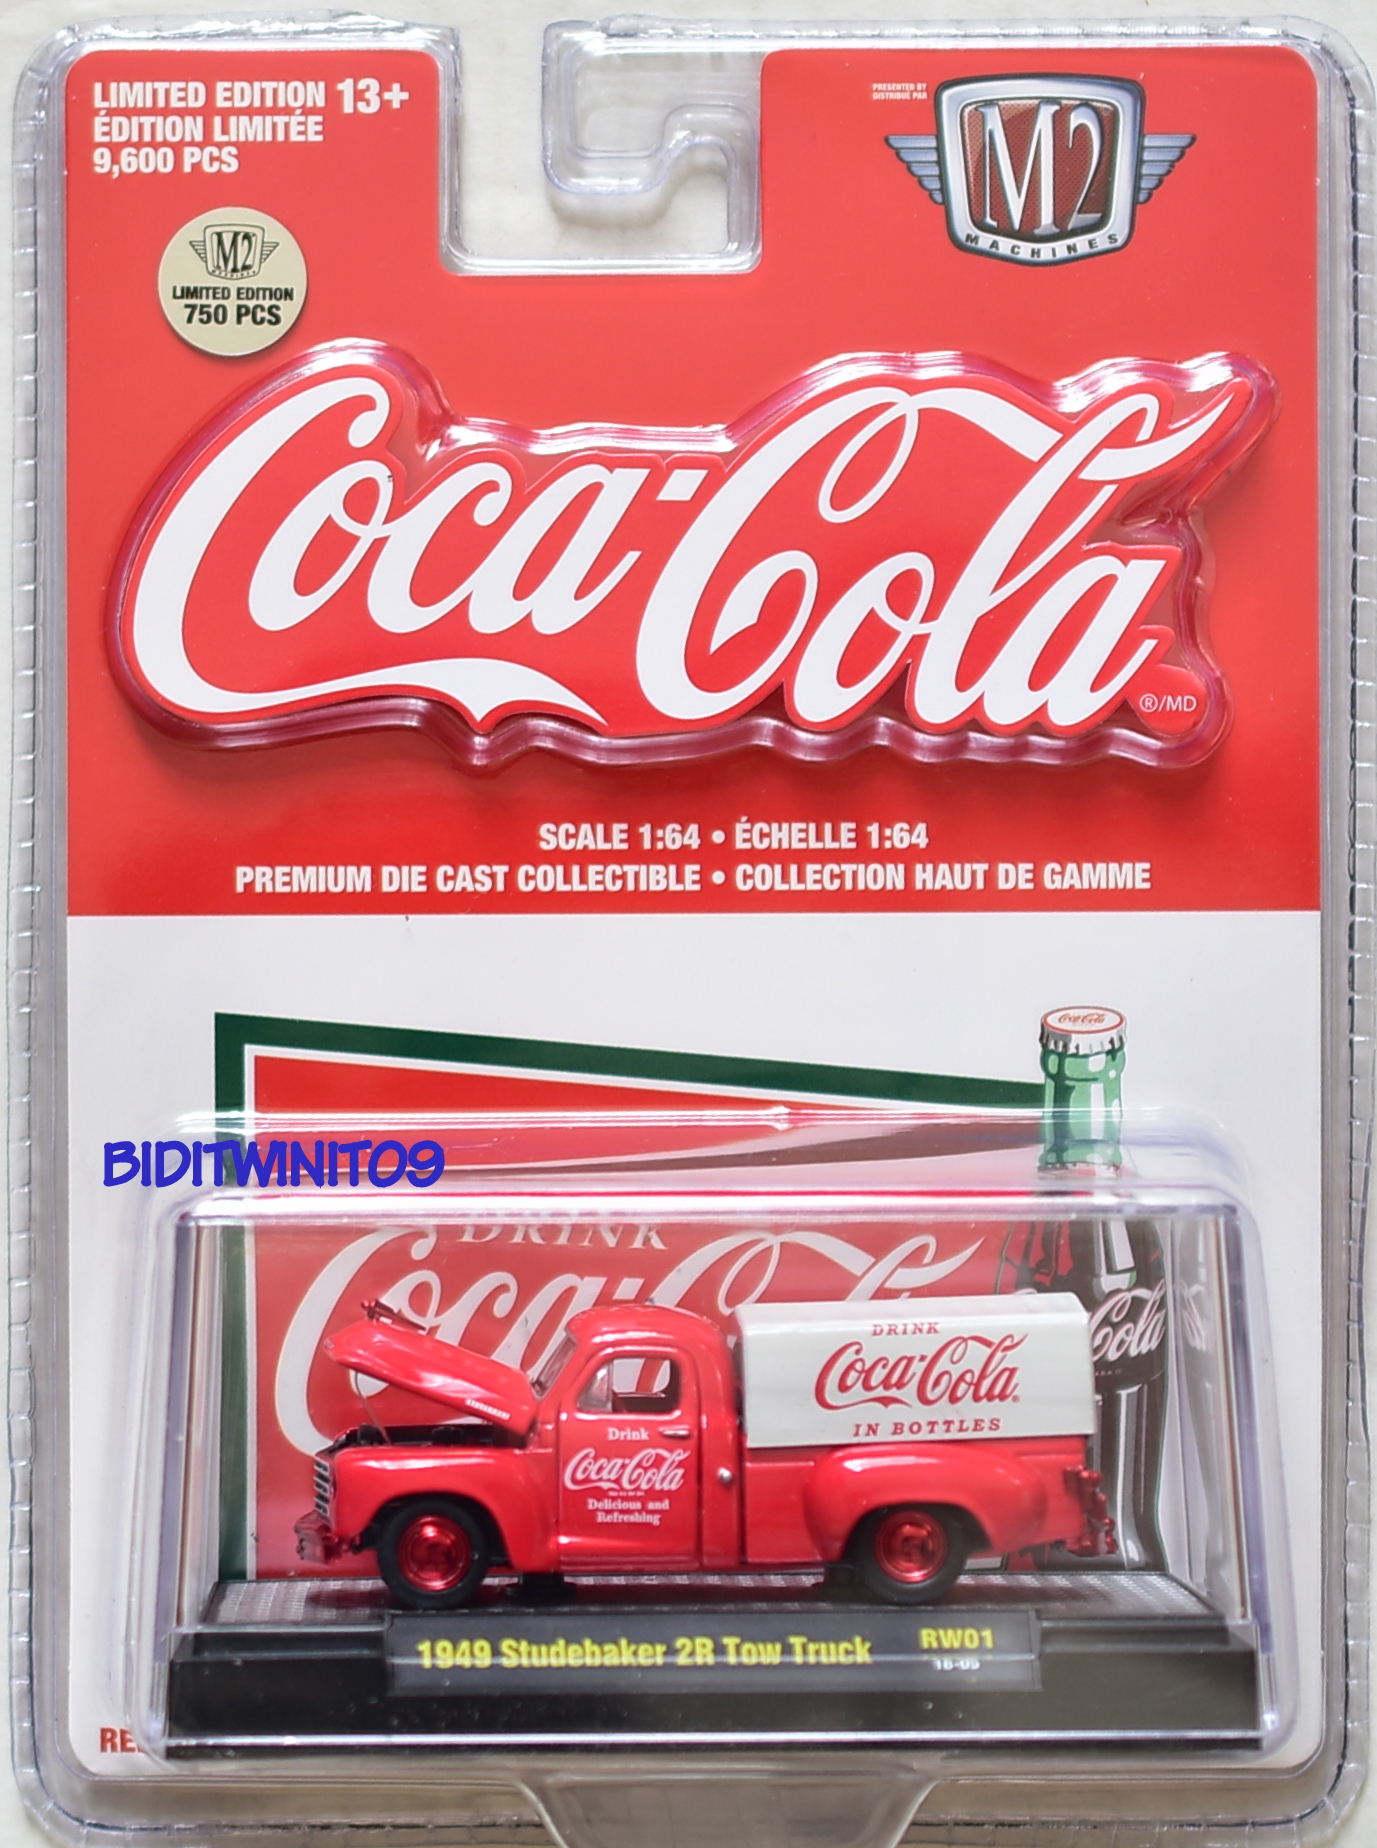 M2 MACHINES COCA COLA COKE HOBBY 1949 STUDEBAKER 2R TOW TRUCK RW01 CHASE